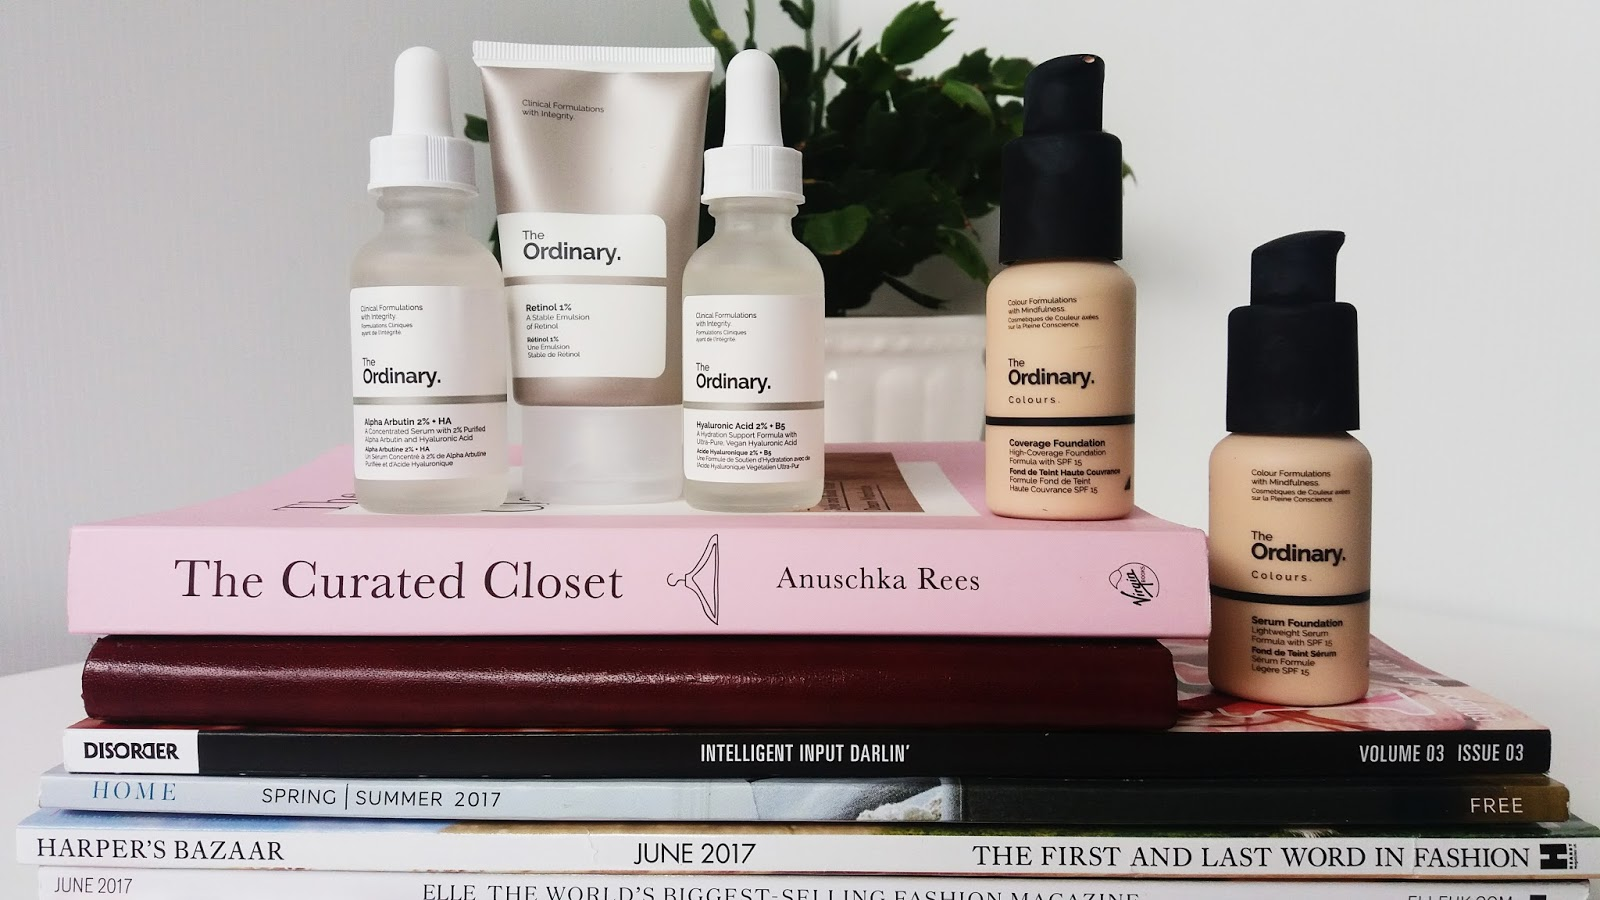 The Ordinary Retinol 1%, Hyaluronic Acid, Alpha Arbutin, Coverage and Serum Foundations Review